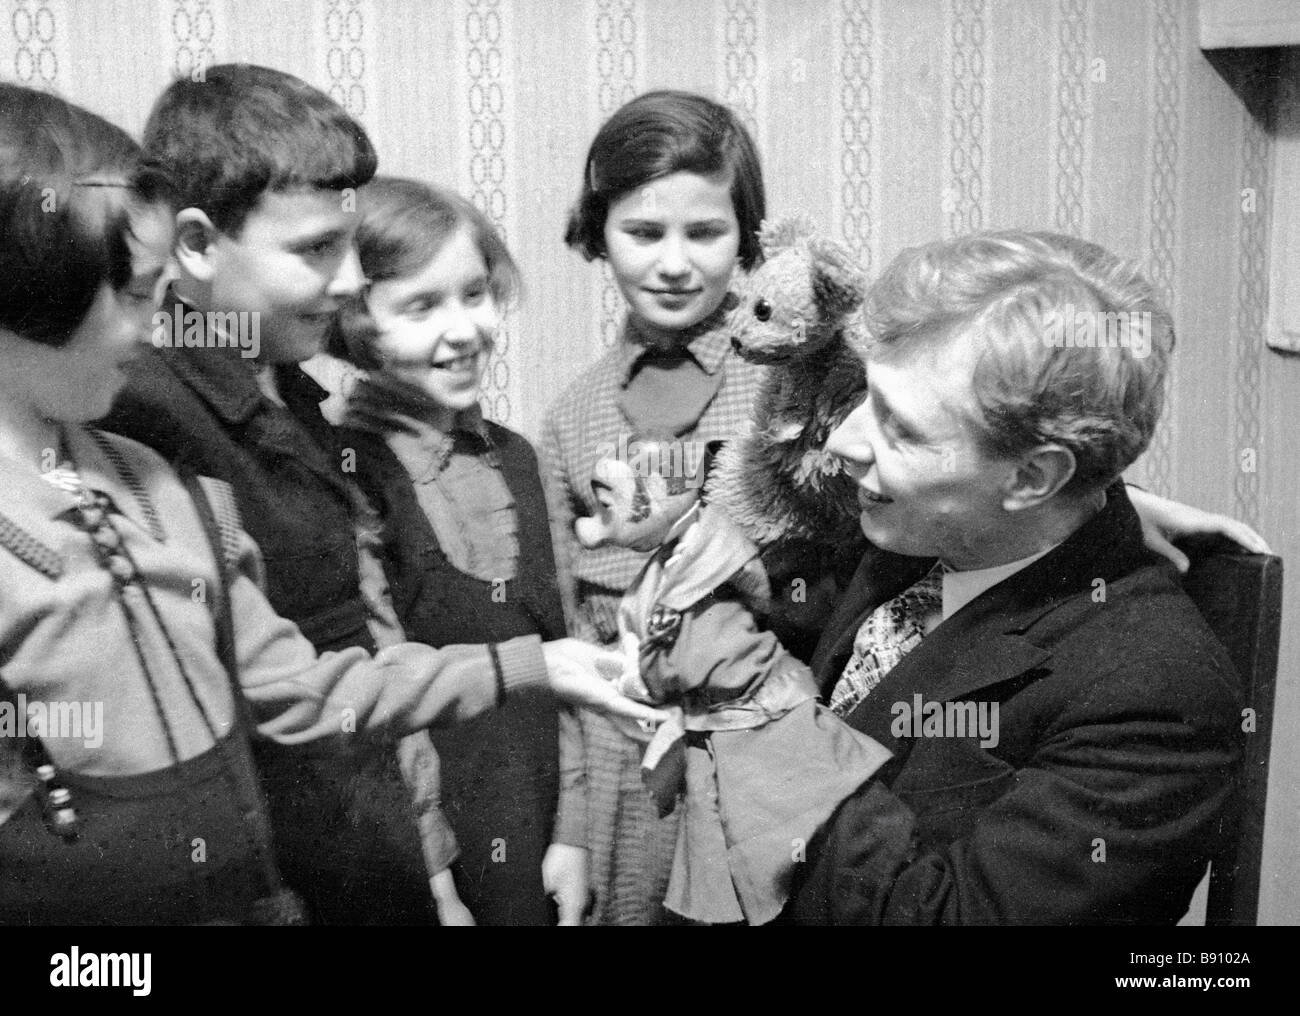 Artist Sergei Obraztsov right showing his dolls to young visitors - Stock Image